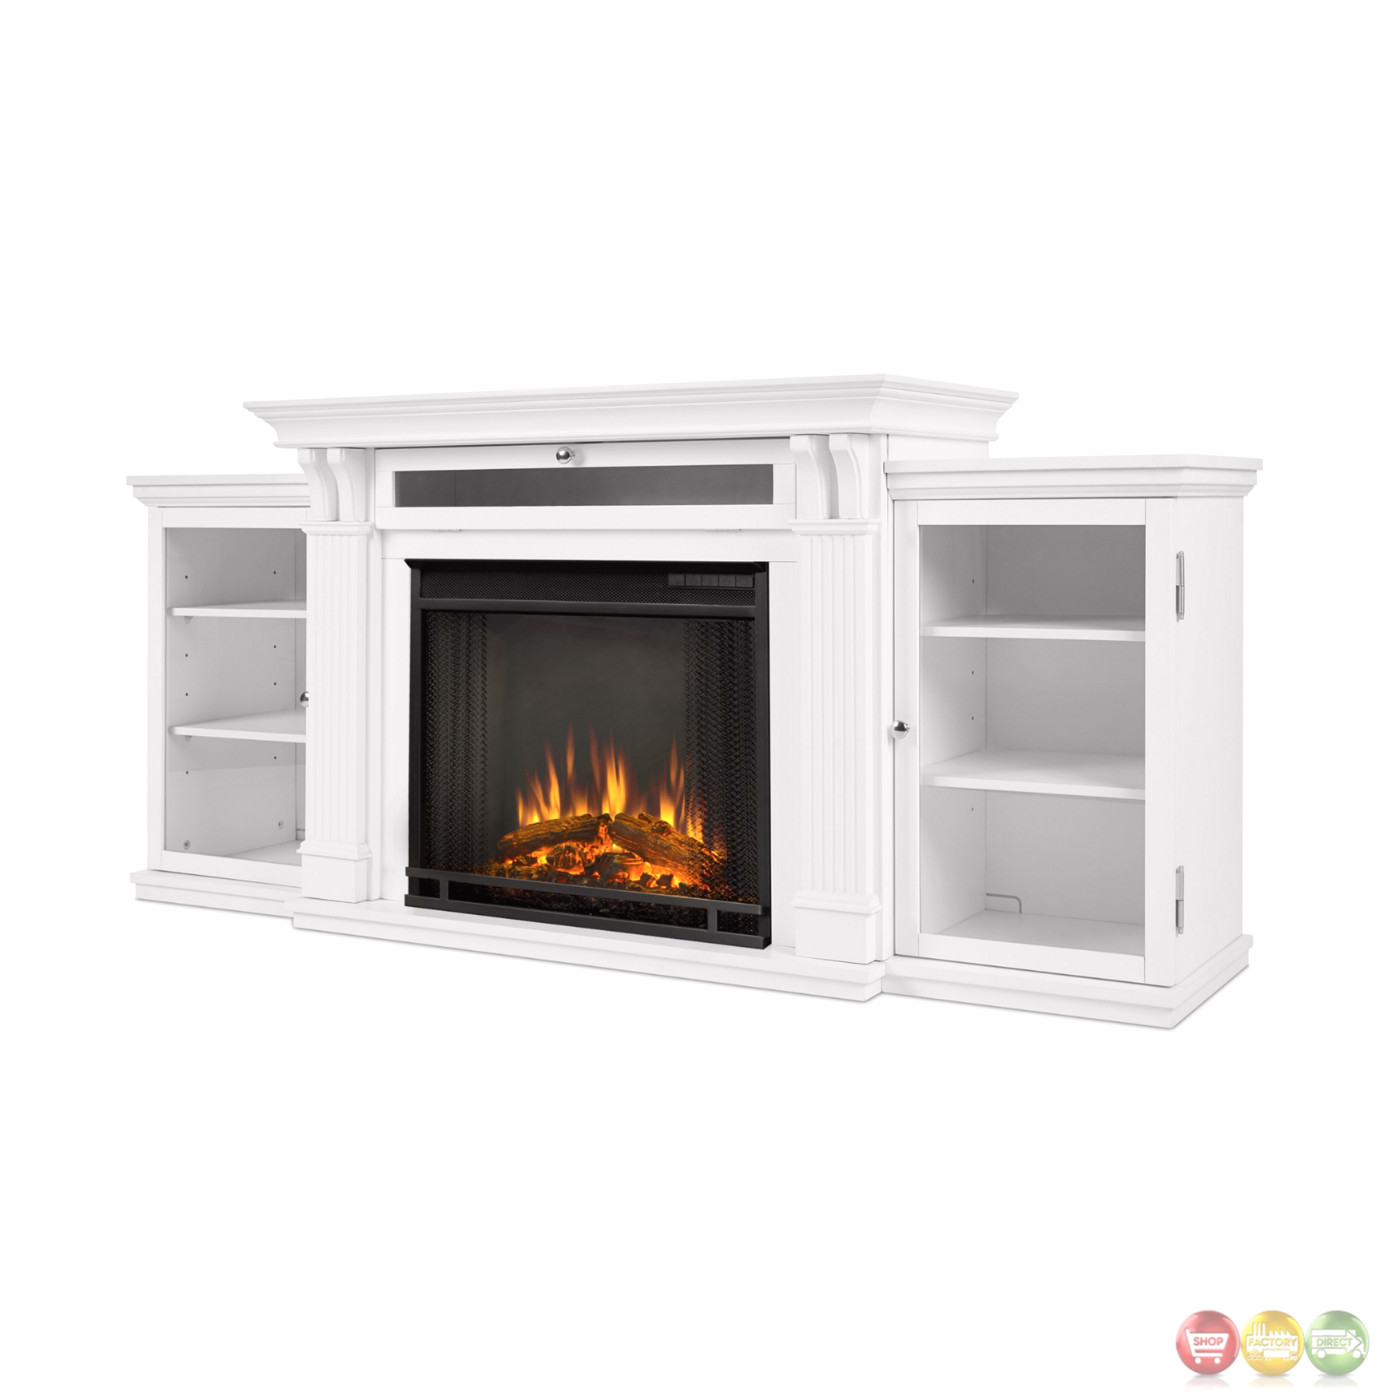 Calie Entertainment Center Electric Led Heater Fireplace In White 67x31